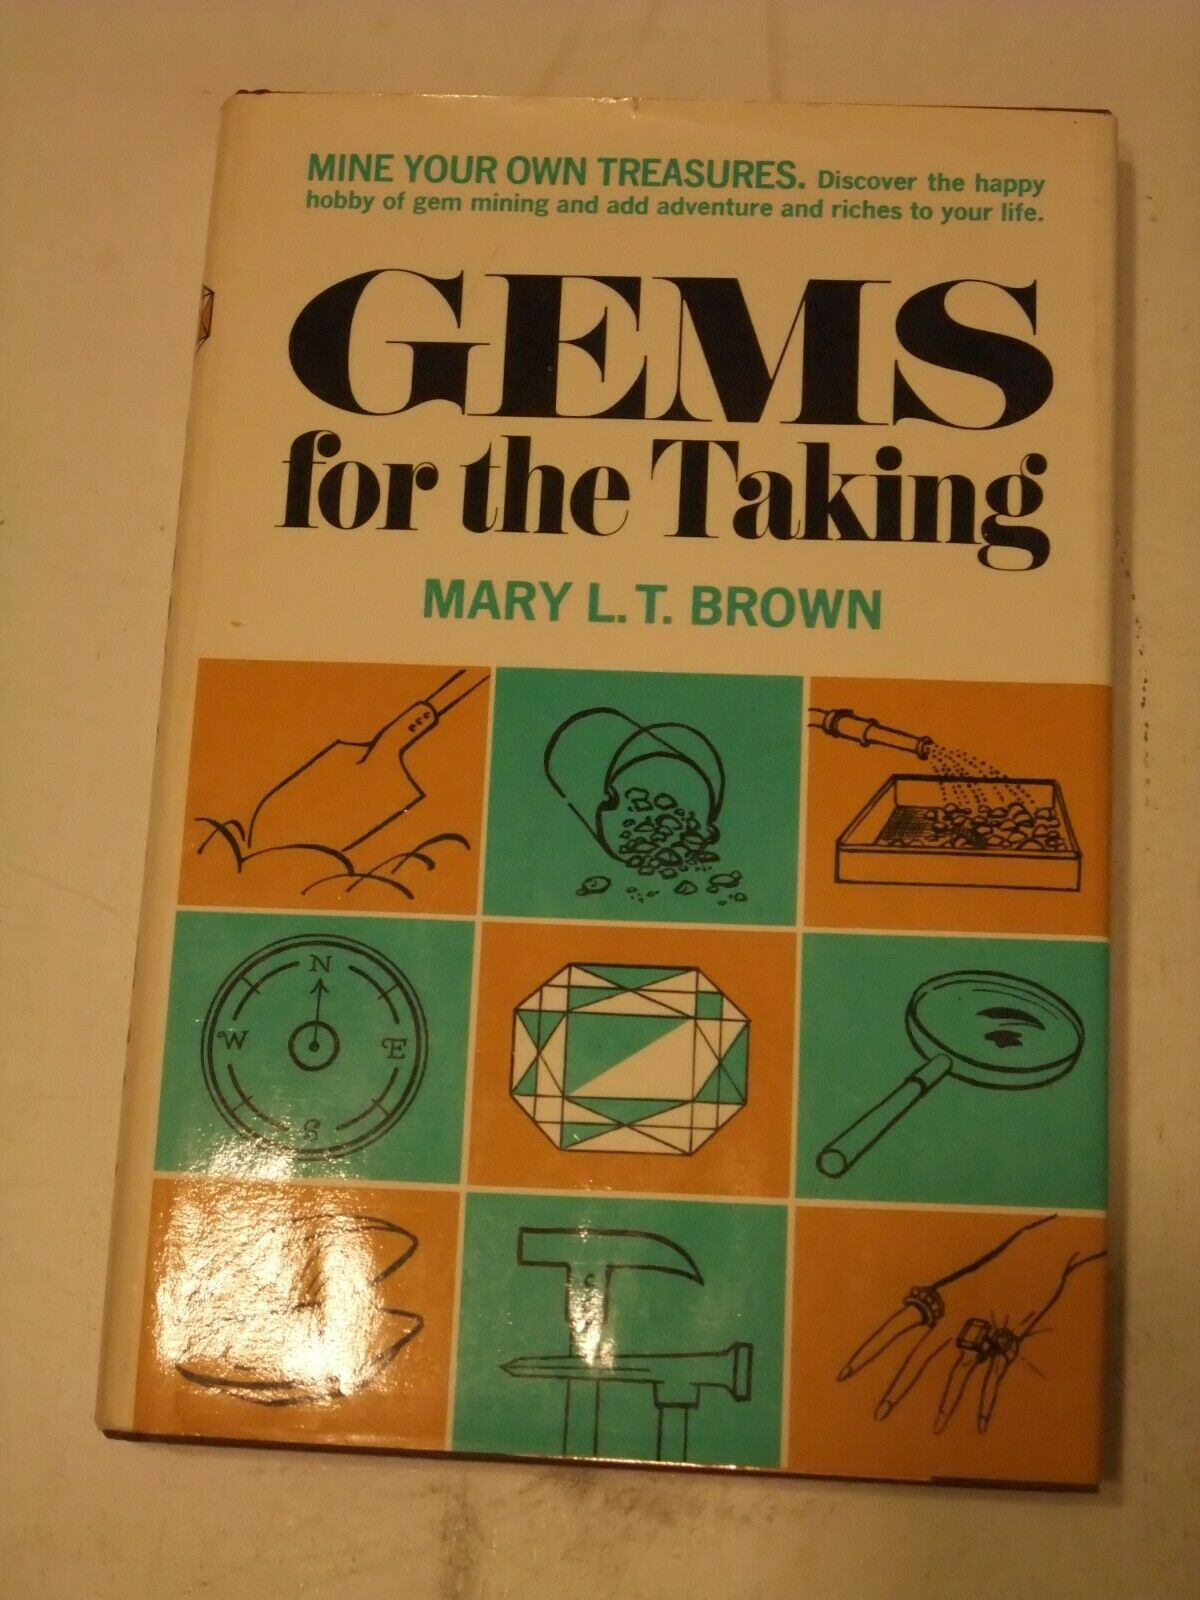 Primary image for Gems for the Taking by Mary L. T. Brown - 1974 -Hardback Book- 6th printing